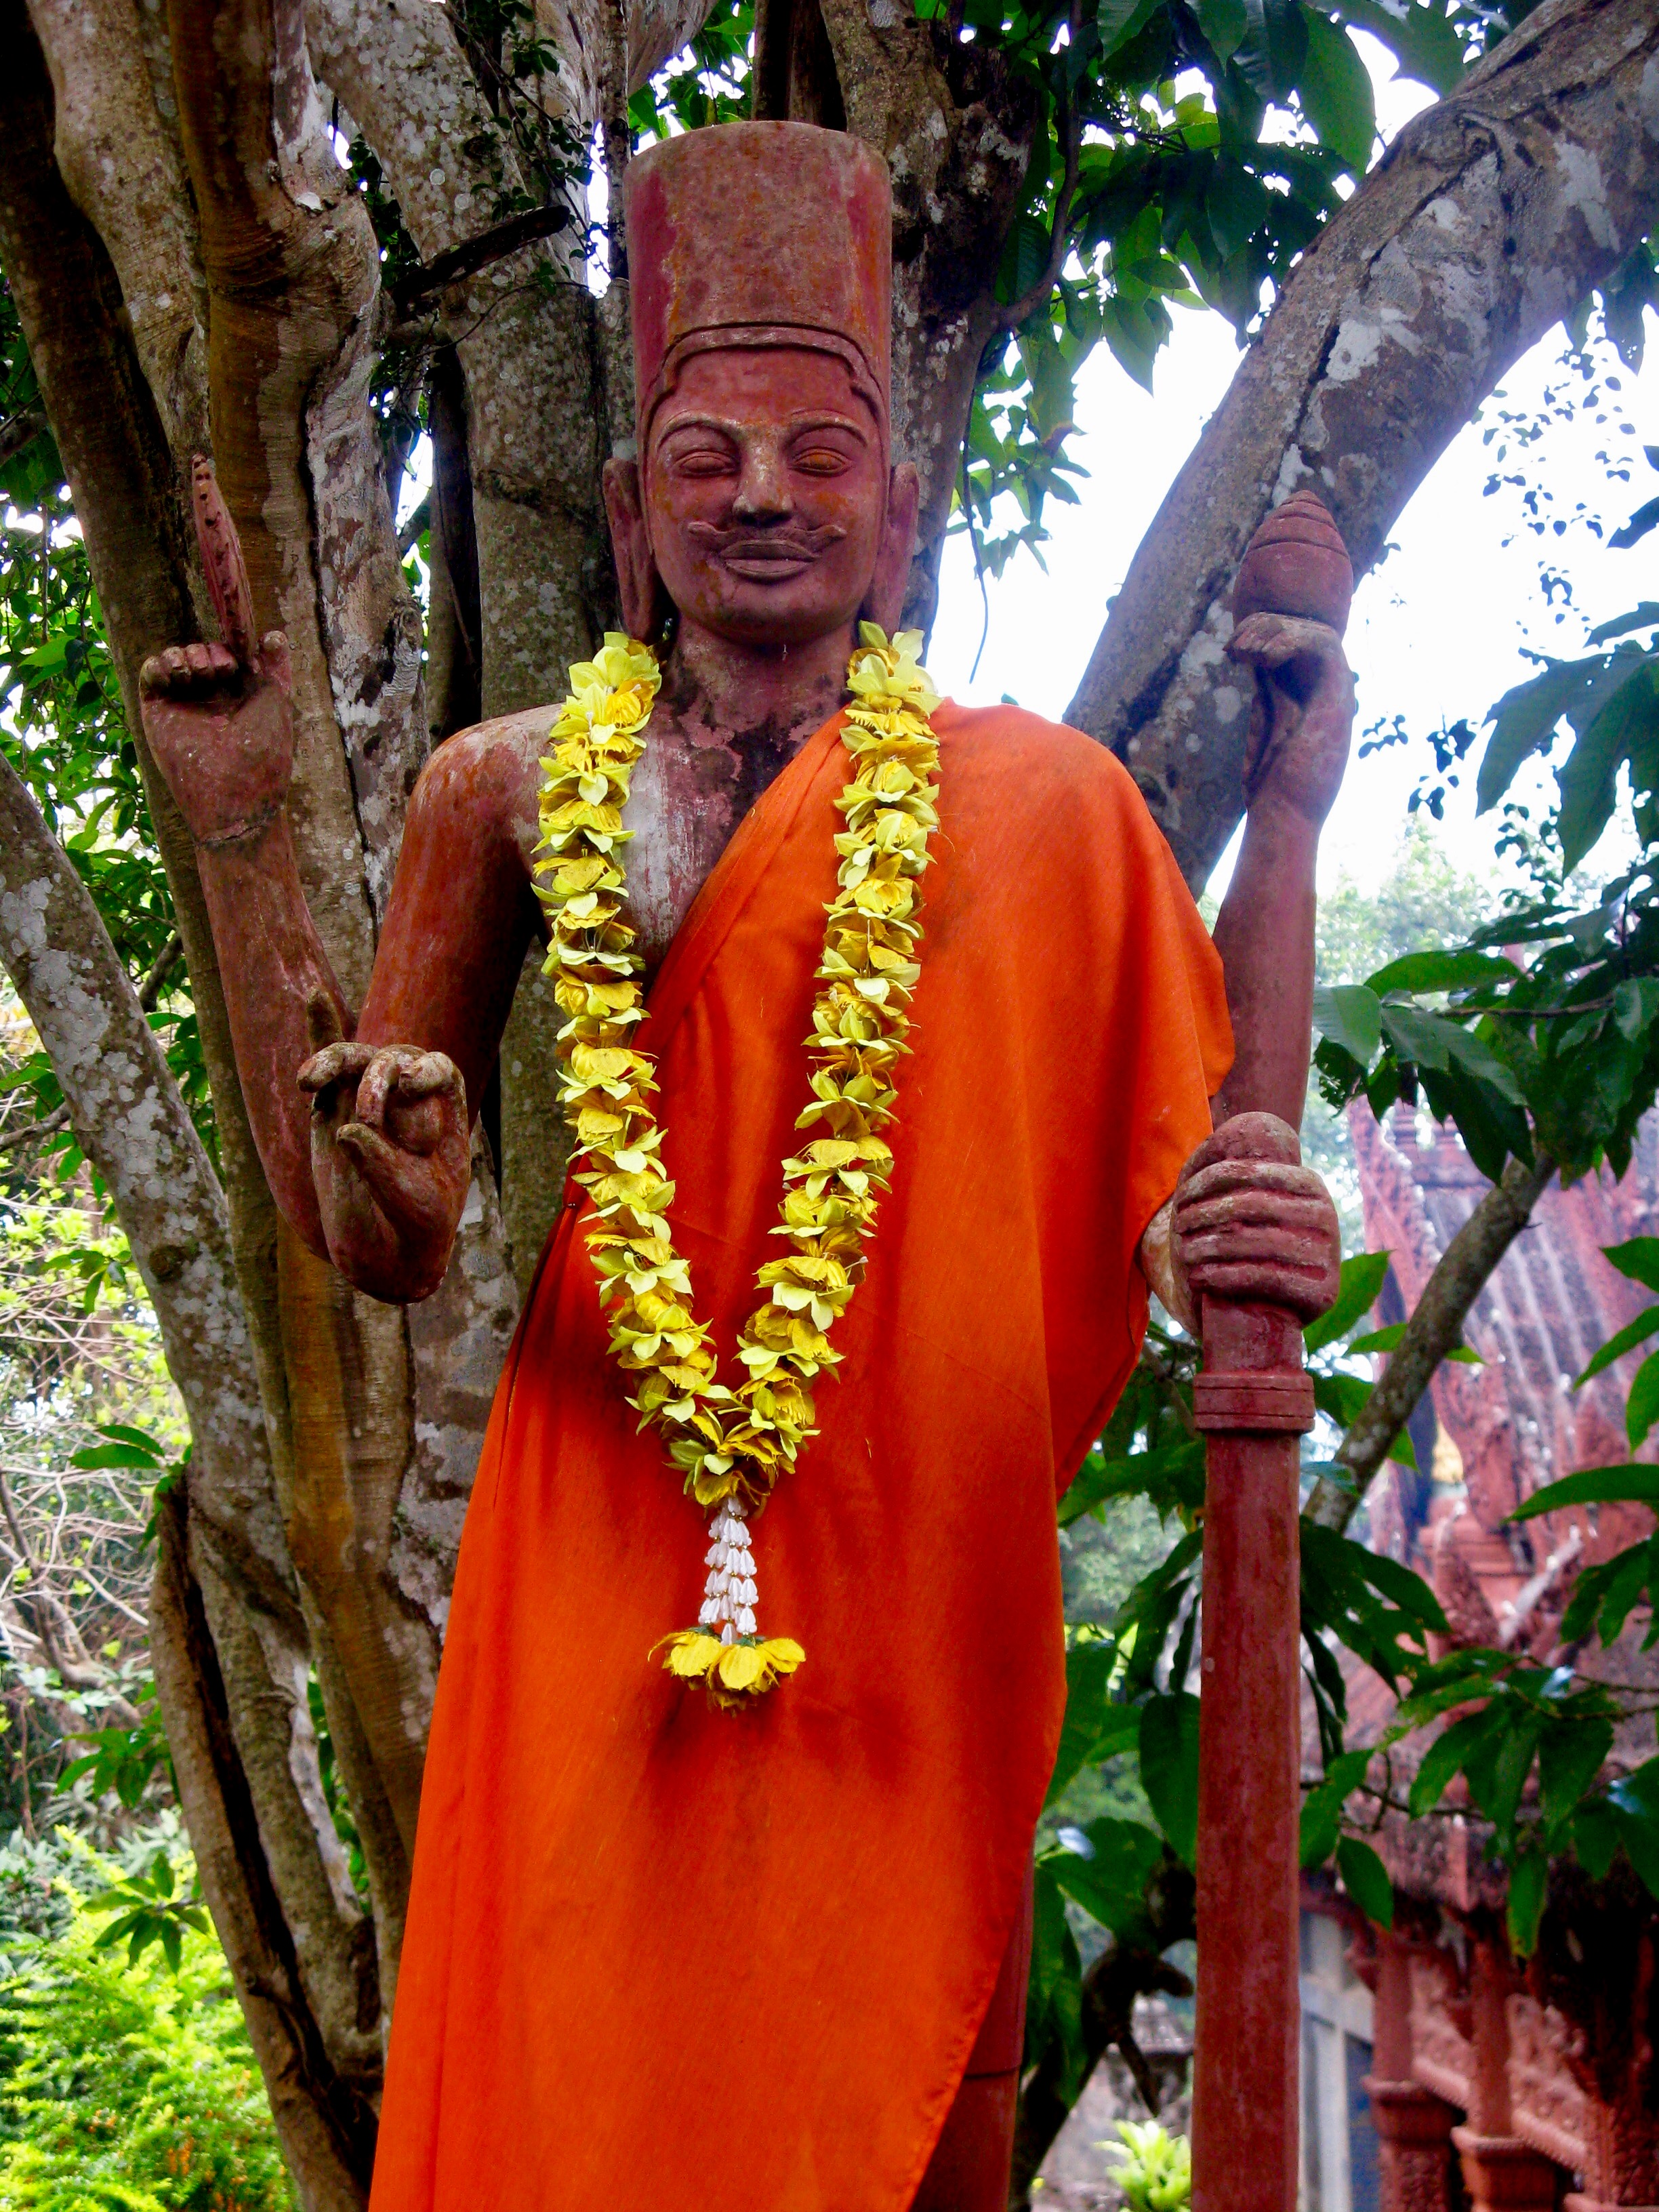 A statue of Vishnu draped in saffron cloth